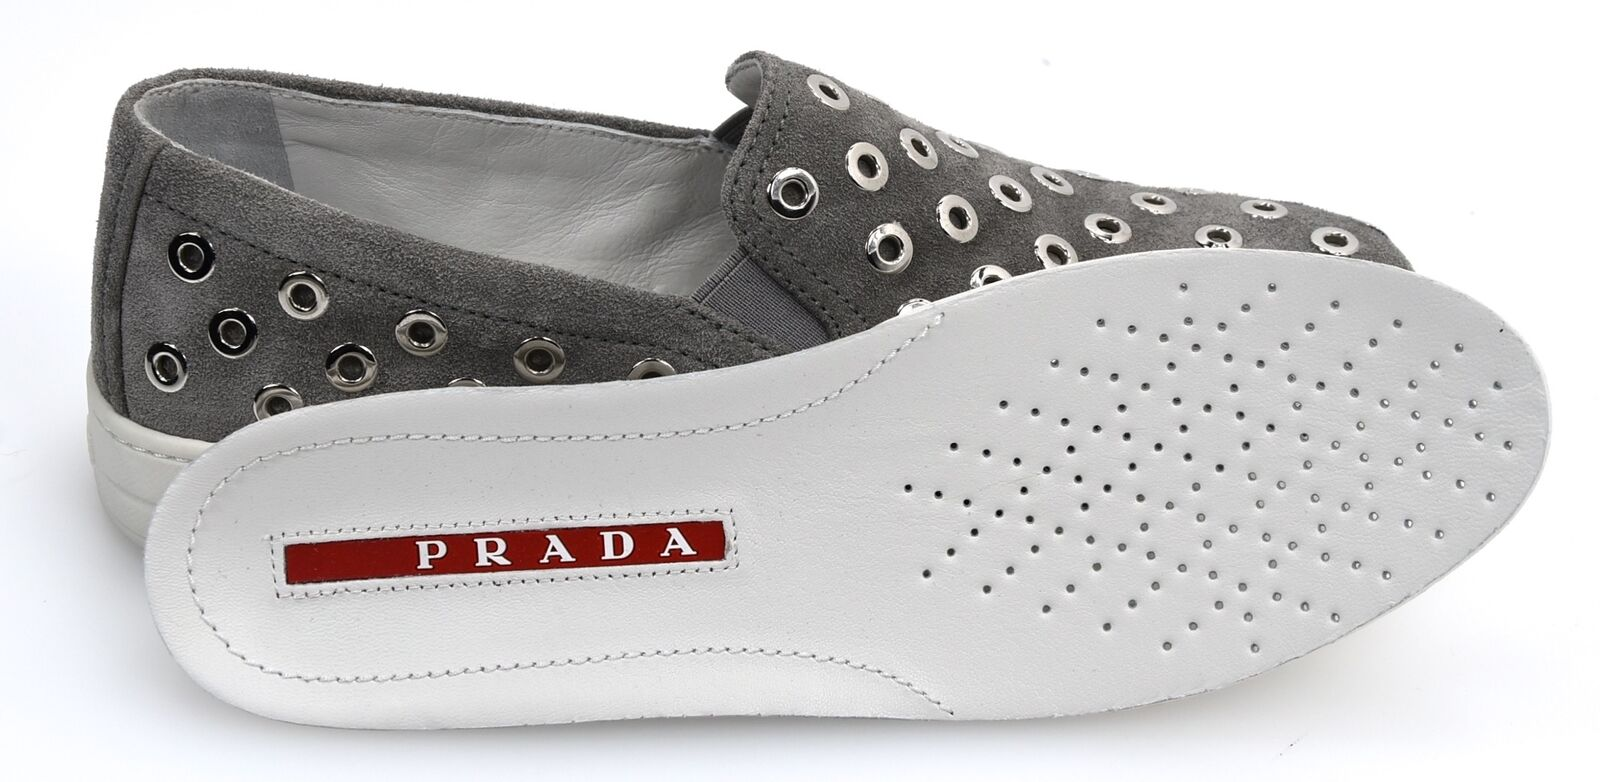 PRADA WOMAN baskets baskets baskets SLIP ON chaussures CASUAL FREE TIME SUEDE CODE 3S6159 03efae